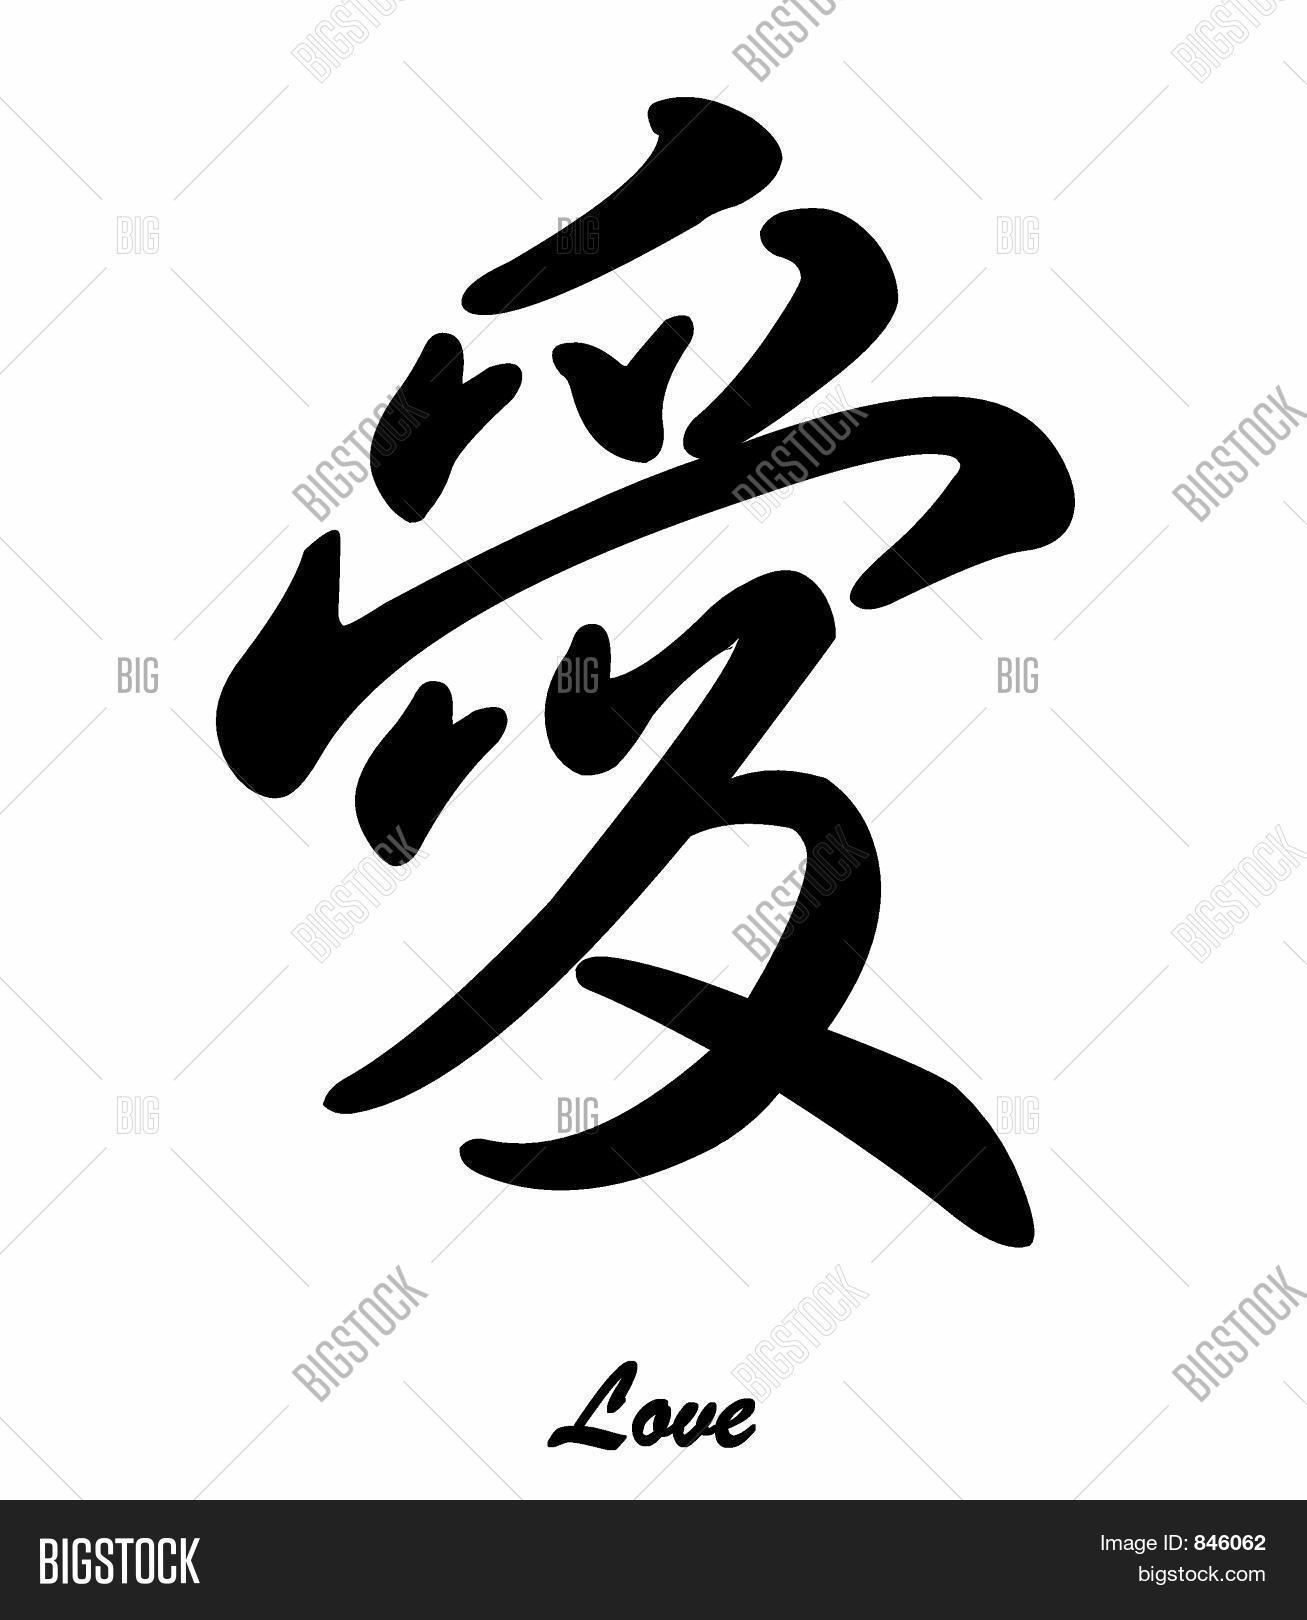 Love chinese character image photo bigstock